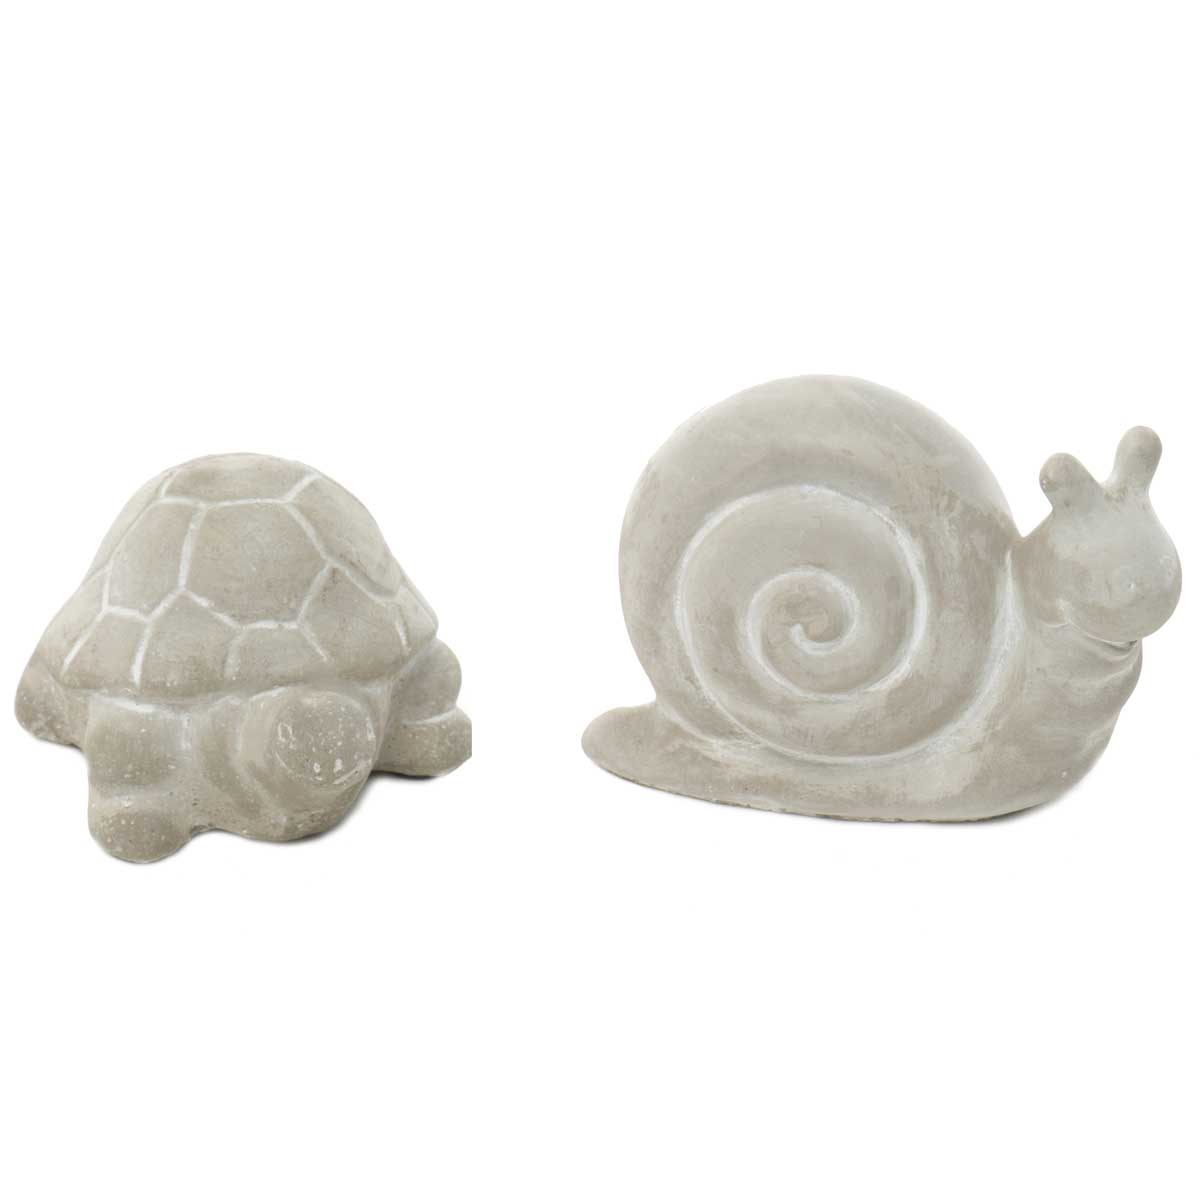 CONCRETE GARDEN FRIENDS TIMMY TURTLE AND SAMMY SNAIL SET OF 2